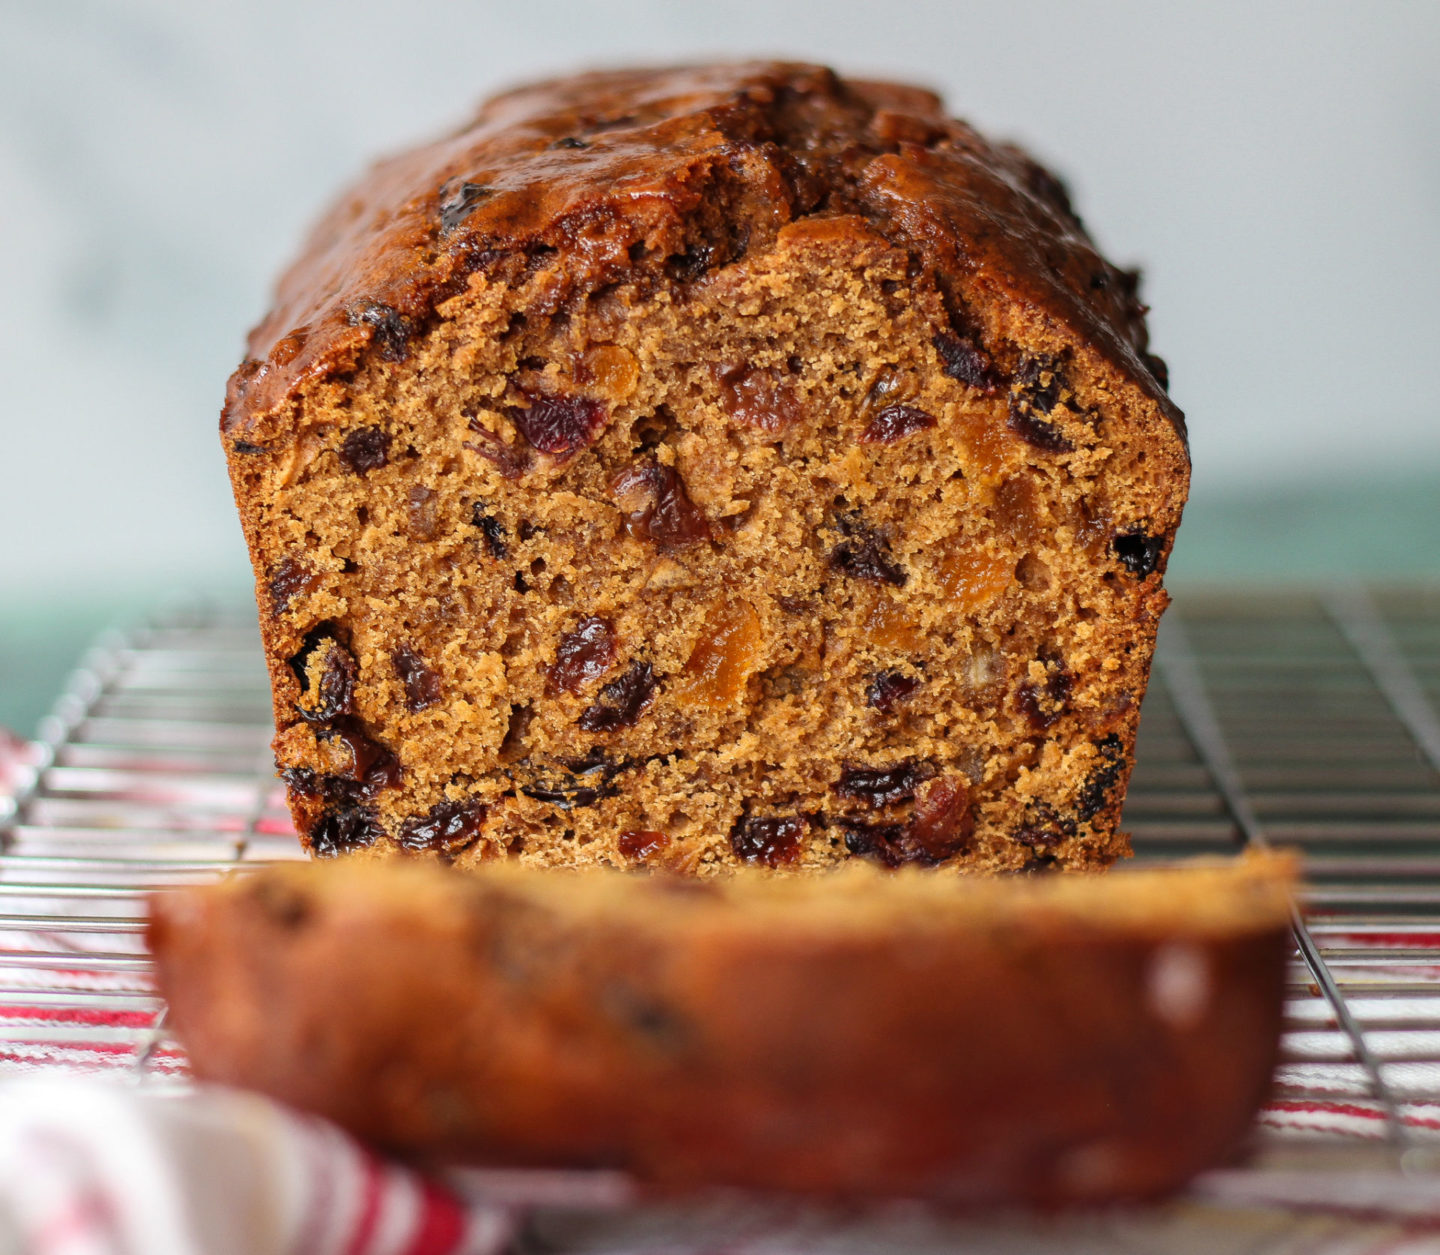 central view inside bara brith with slice in front which is out of focus